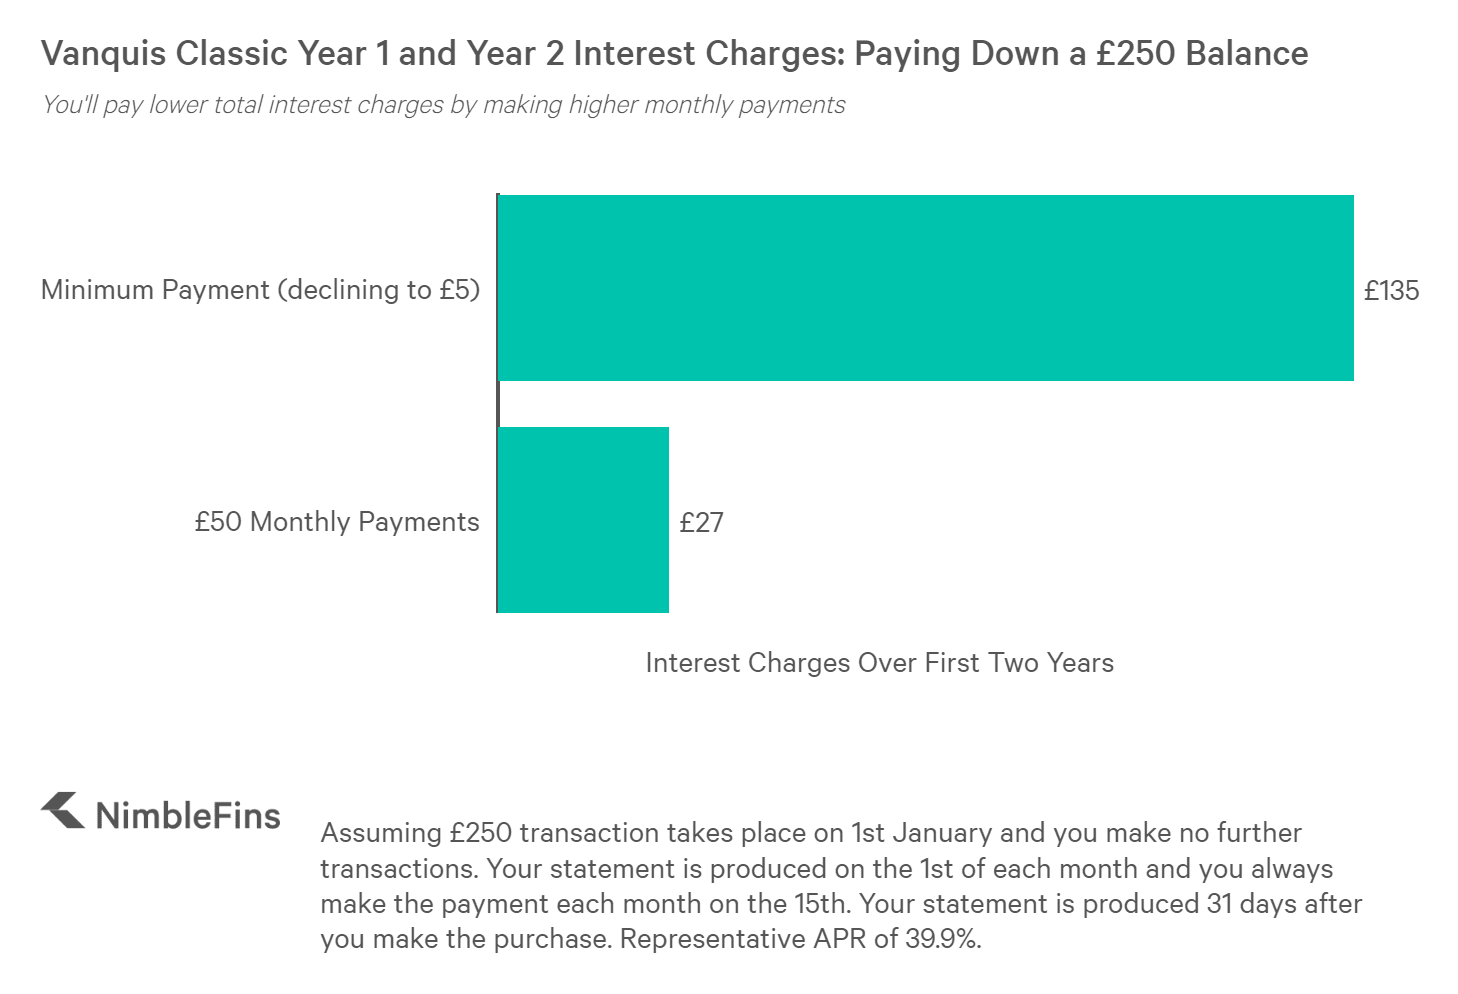 chart showing total interest charges paid while paying down a £250 credit card debt on the Vanquis Classic credit card with minimum monthly payments and higher monthly payments